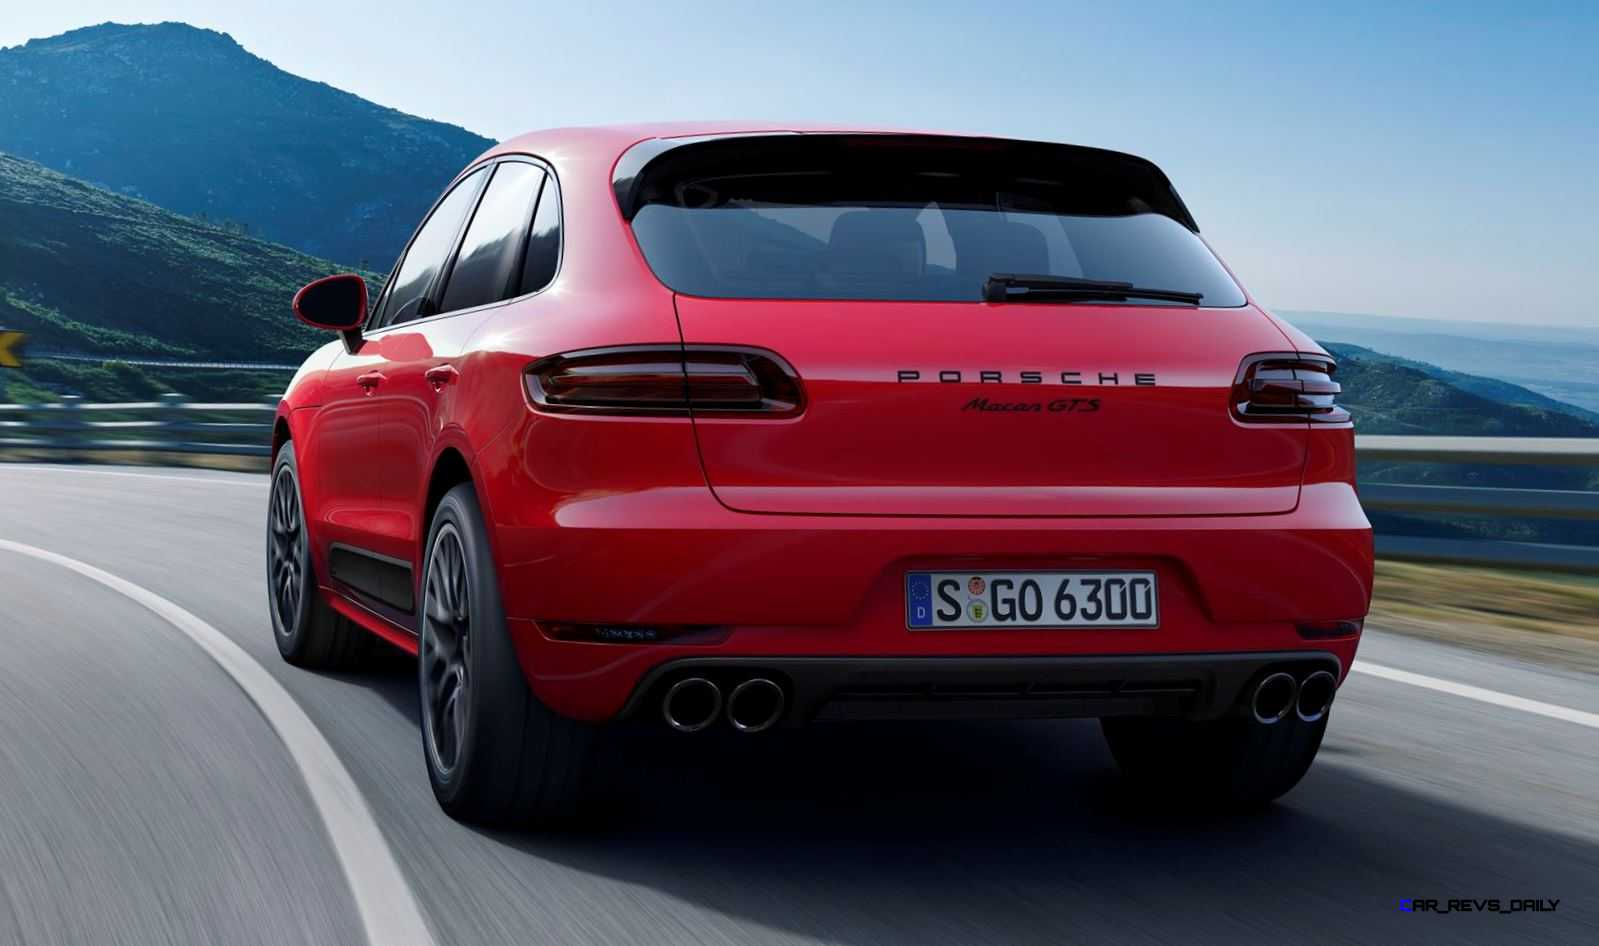 Elegant 2016 Porsche Macan GTS Makes World Debut In Tokyo